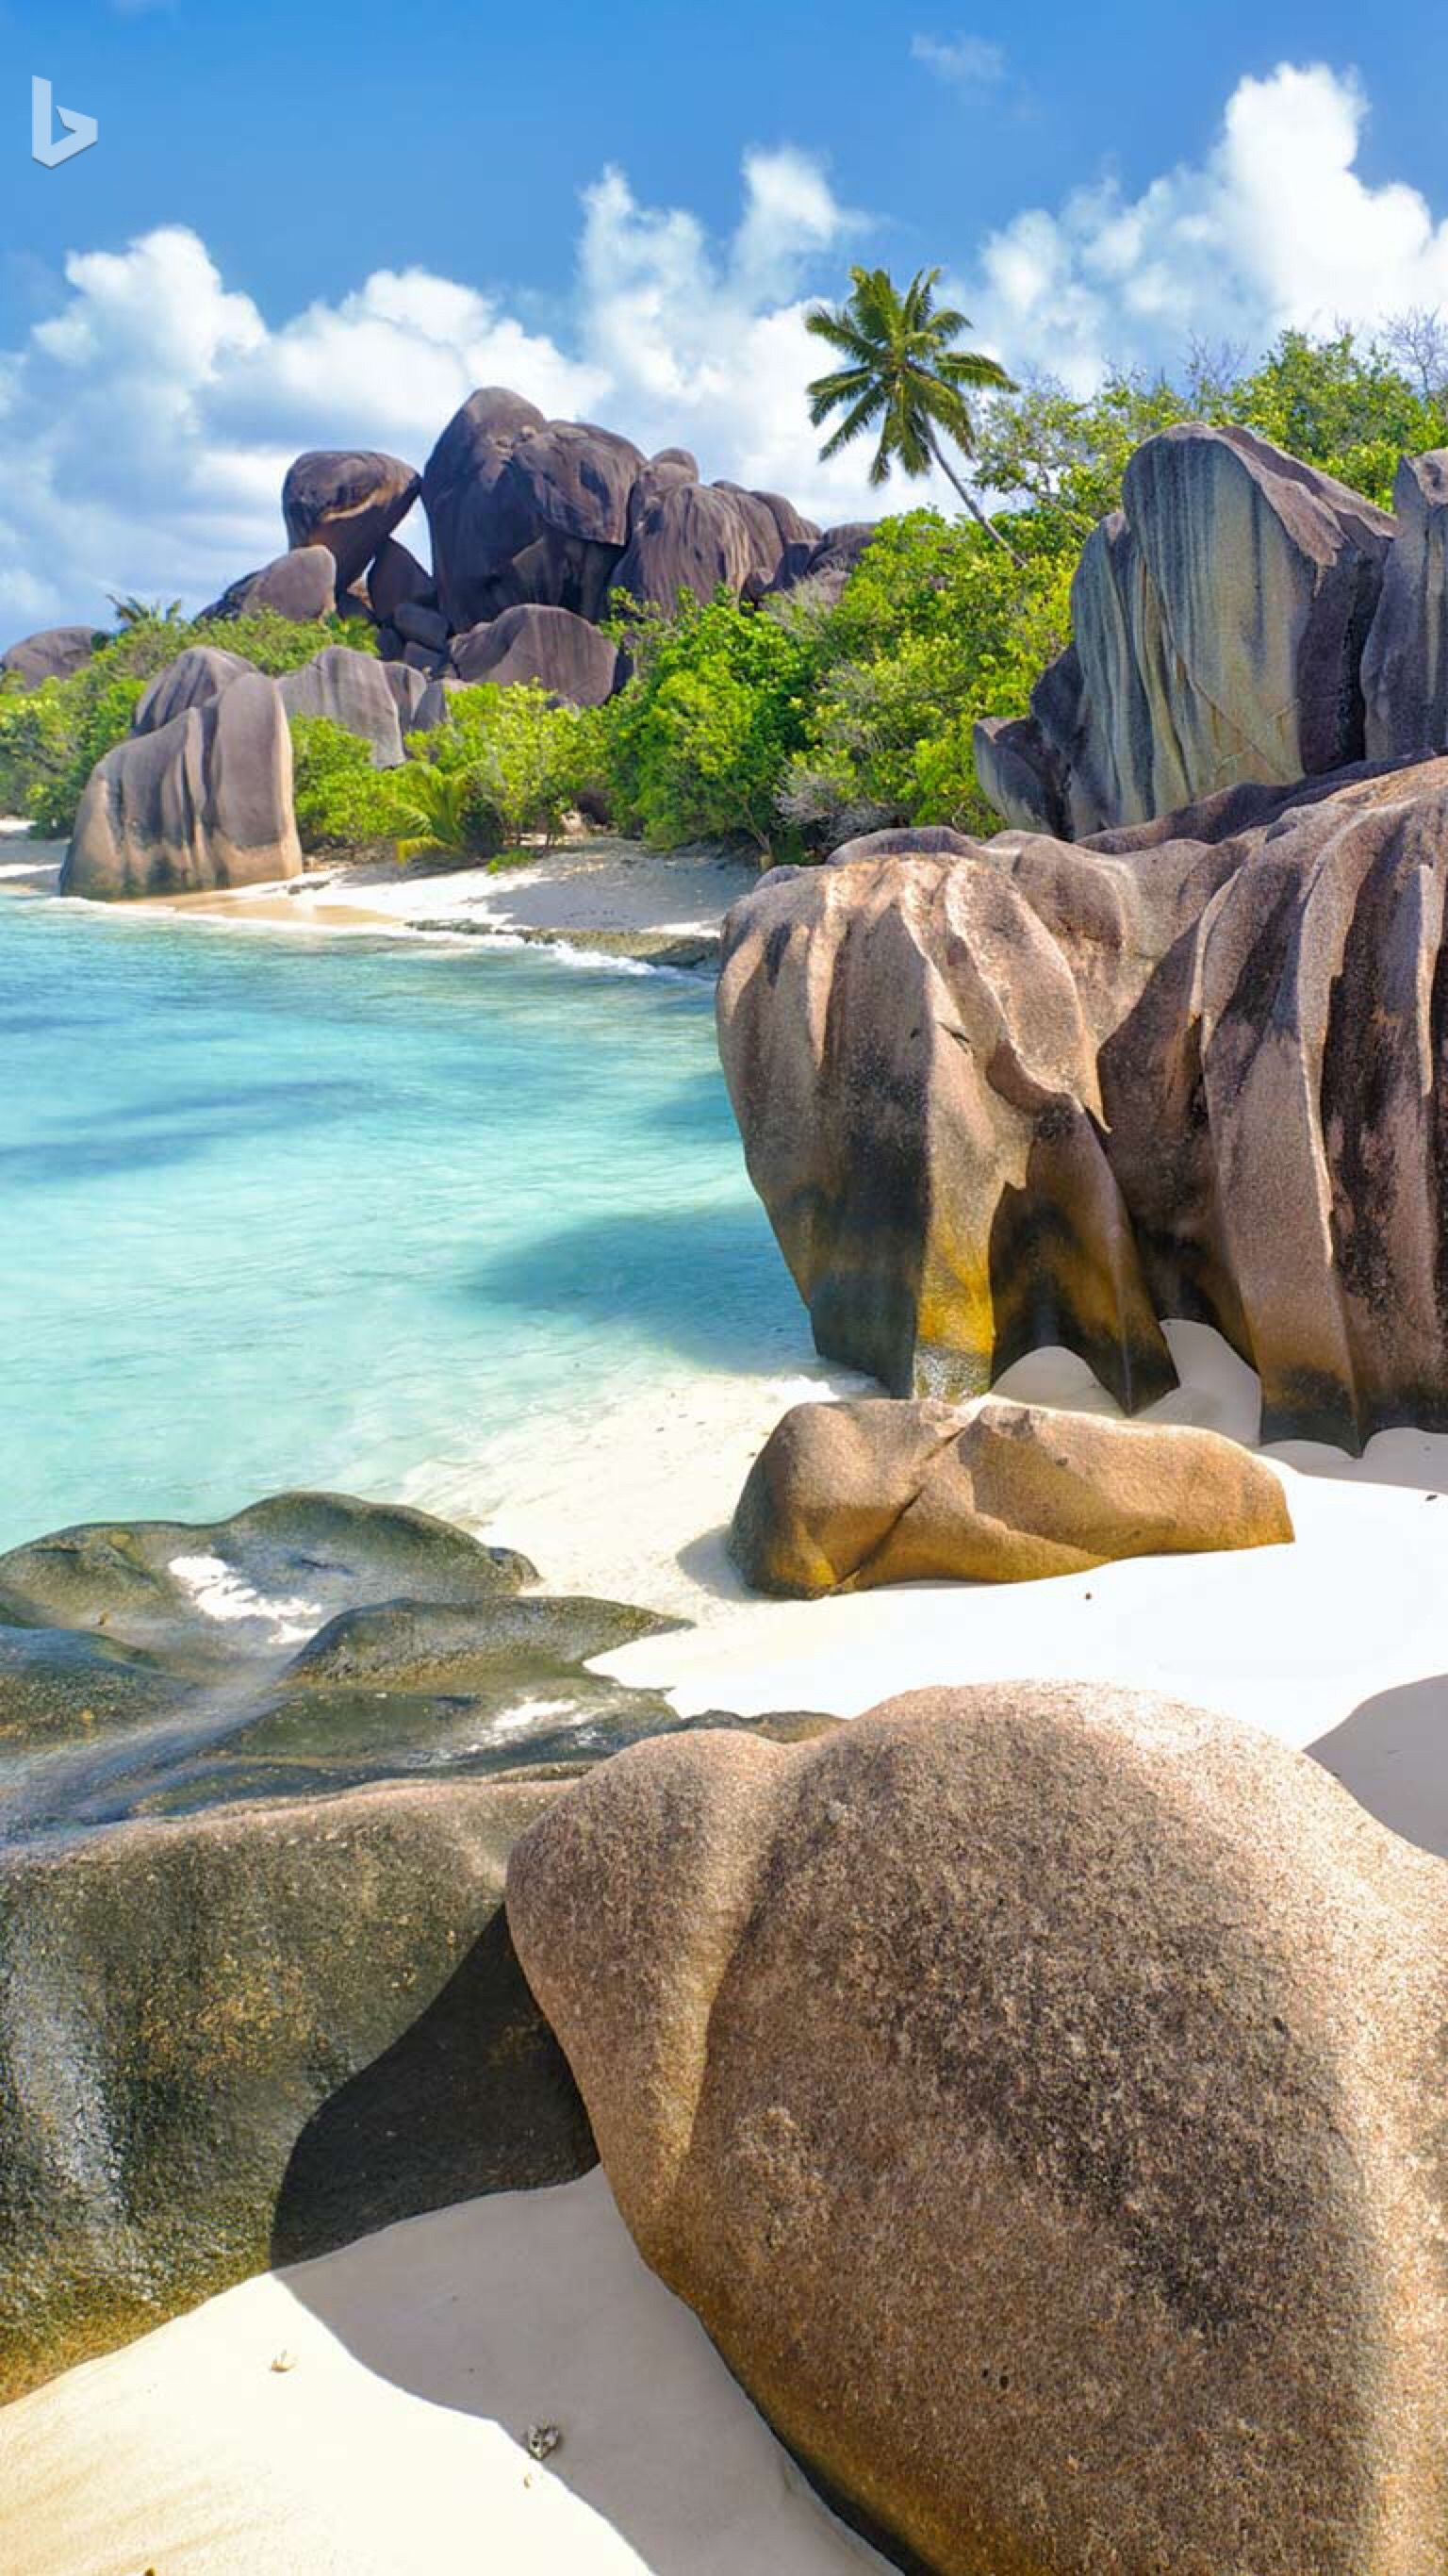 La Digue, Seychelles Islands (Oleksandr Dibrova, Copyright